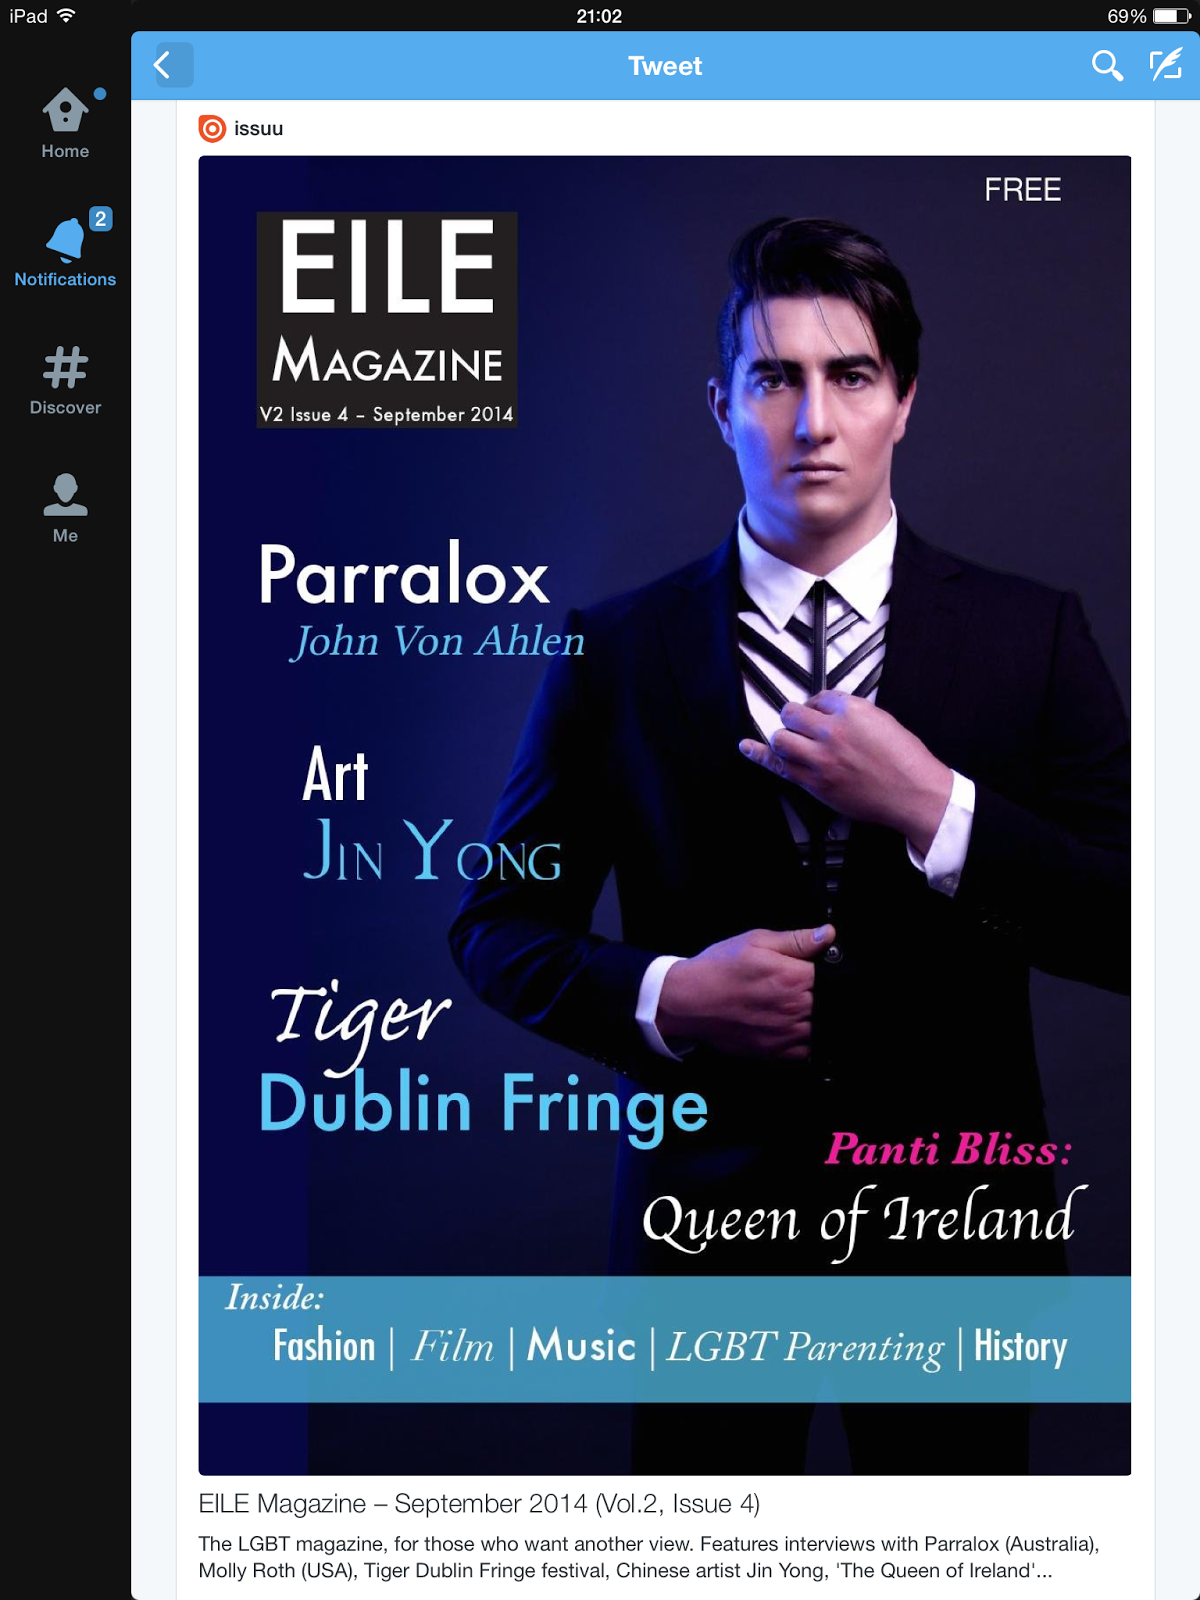 Parralox Interview/Front cover of EILE Magazine